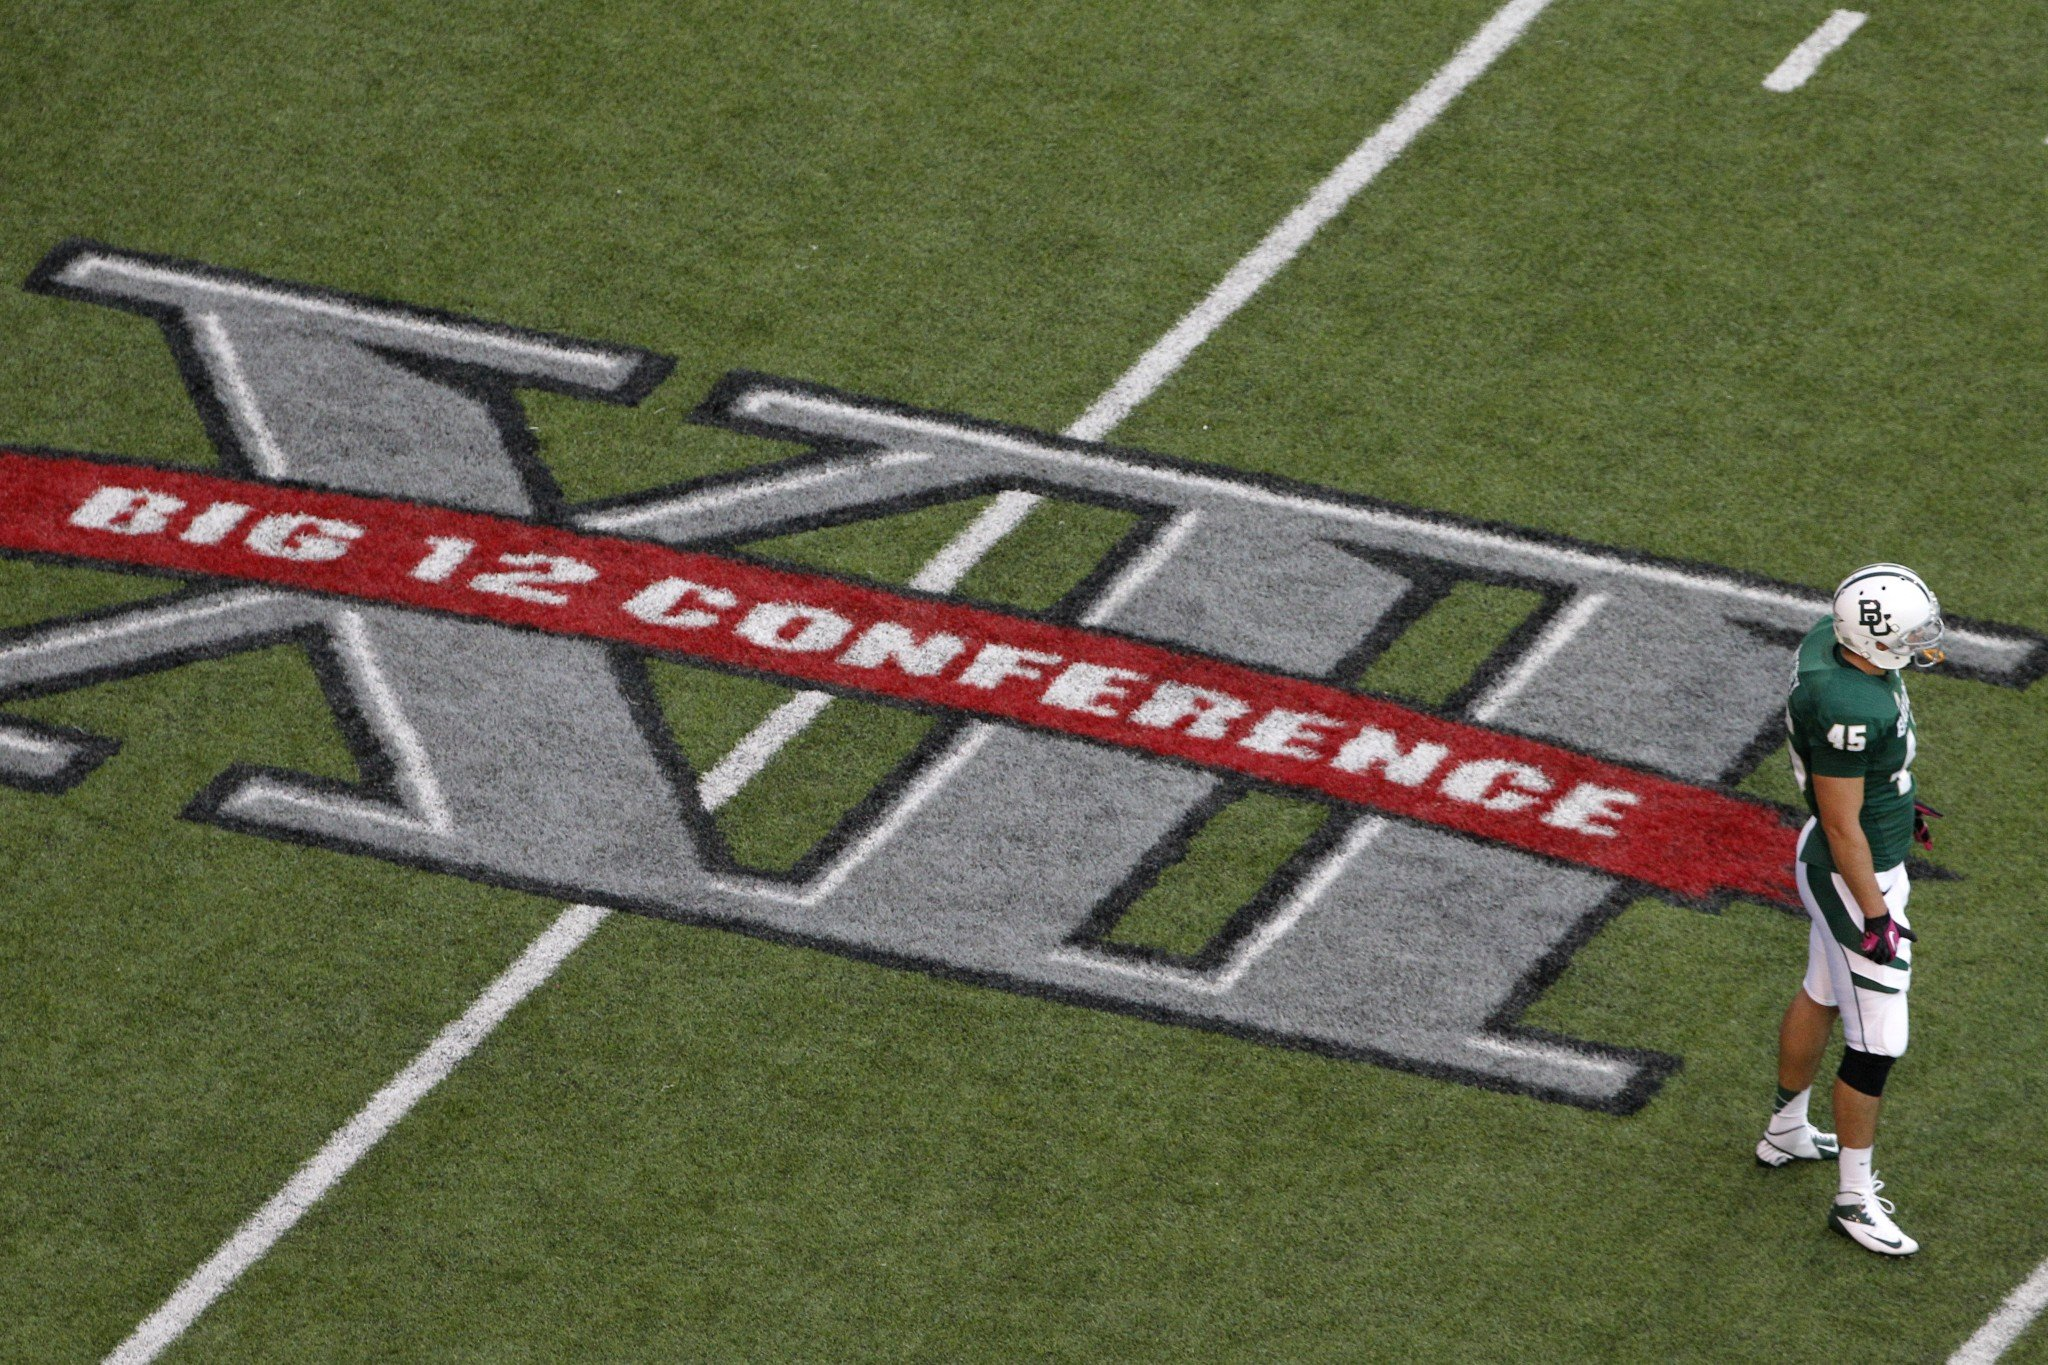 Big 12 Conference Decides Not to Expand, Will Stay at 10 Teams